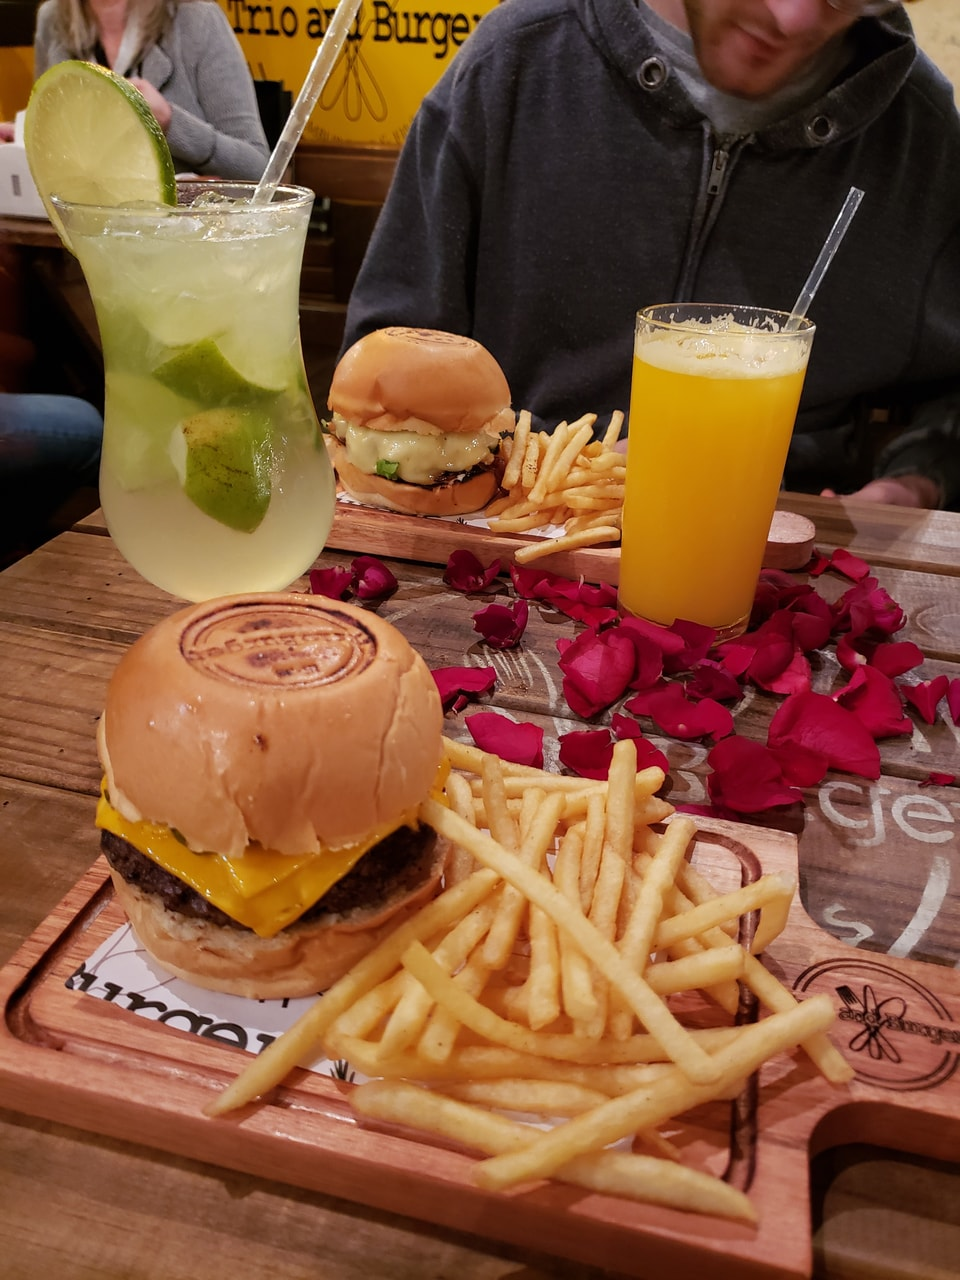 boyfriend, burger, and cheese image